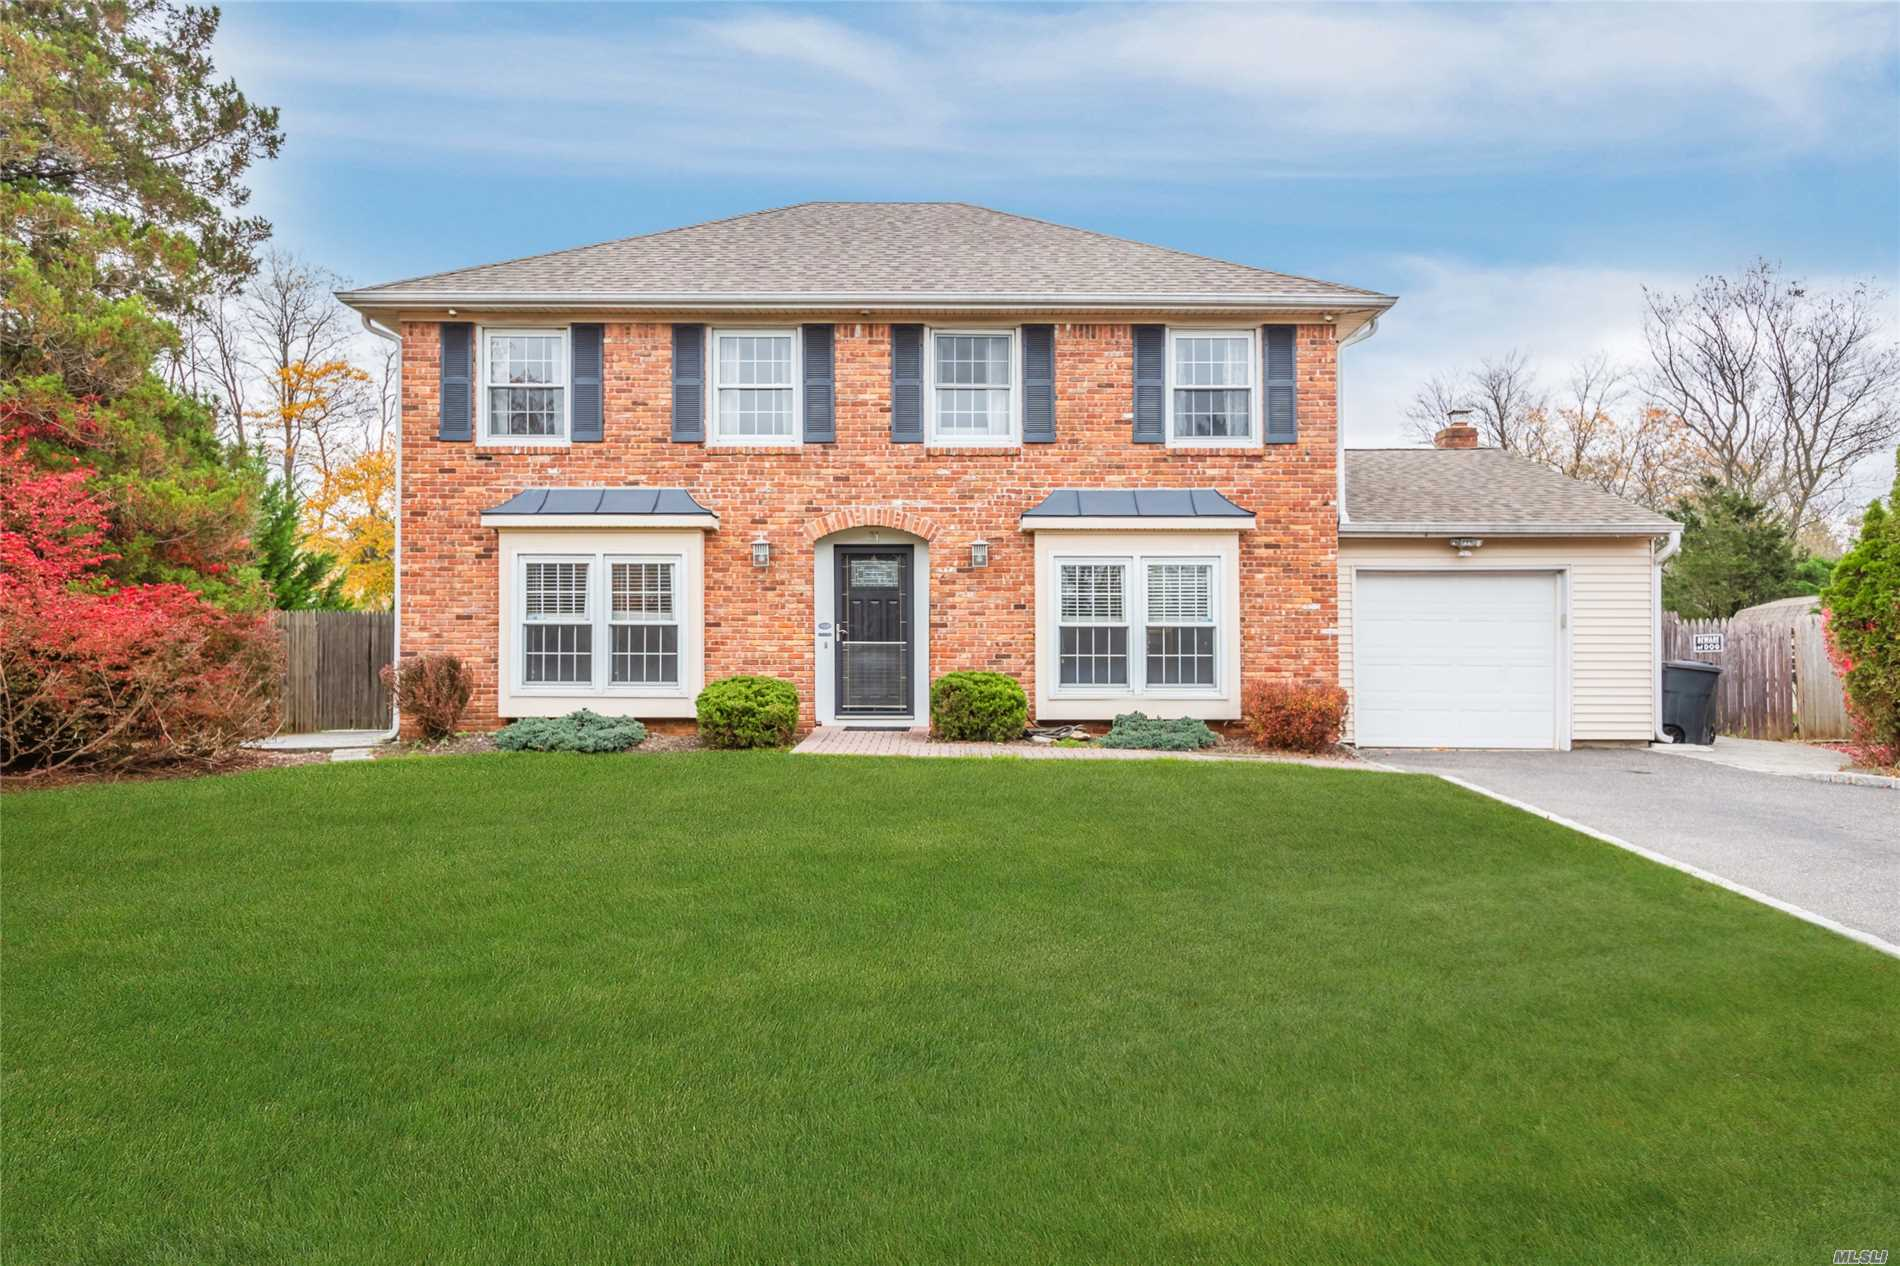 Photo of home for sale at 31 Magnet St, Stony Brook NY